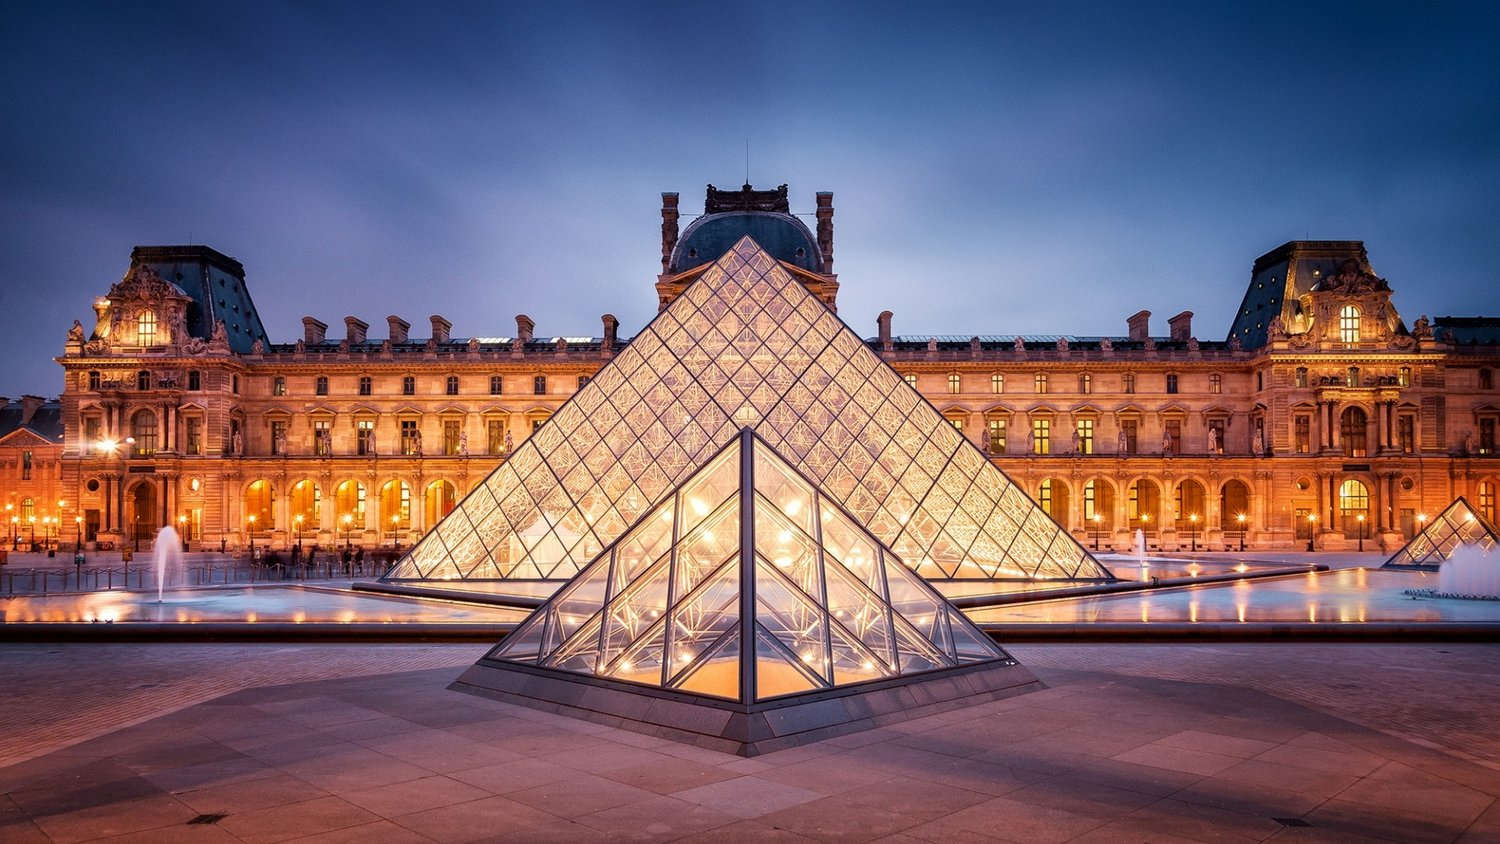 The World's Most Exquisite Museum: The Louvre